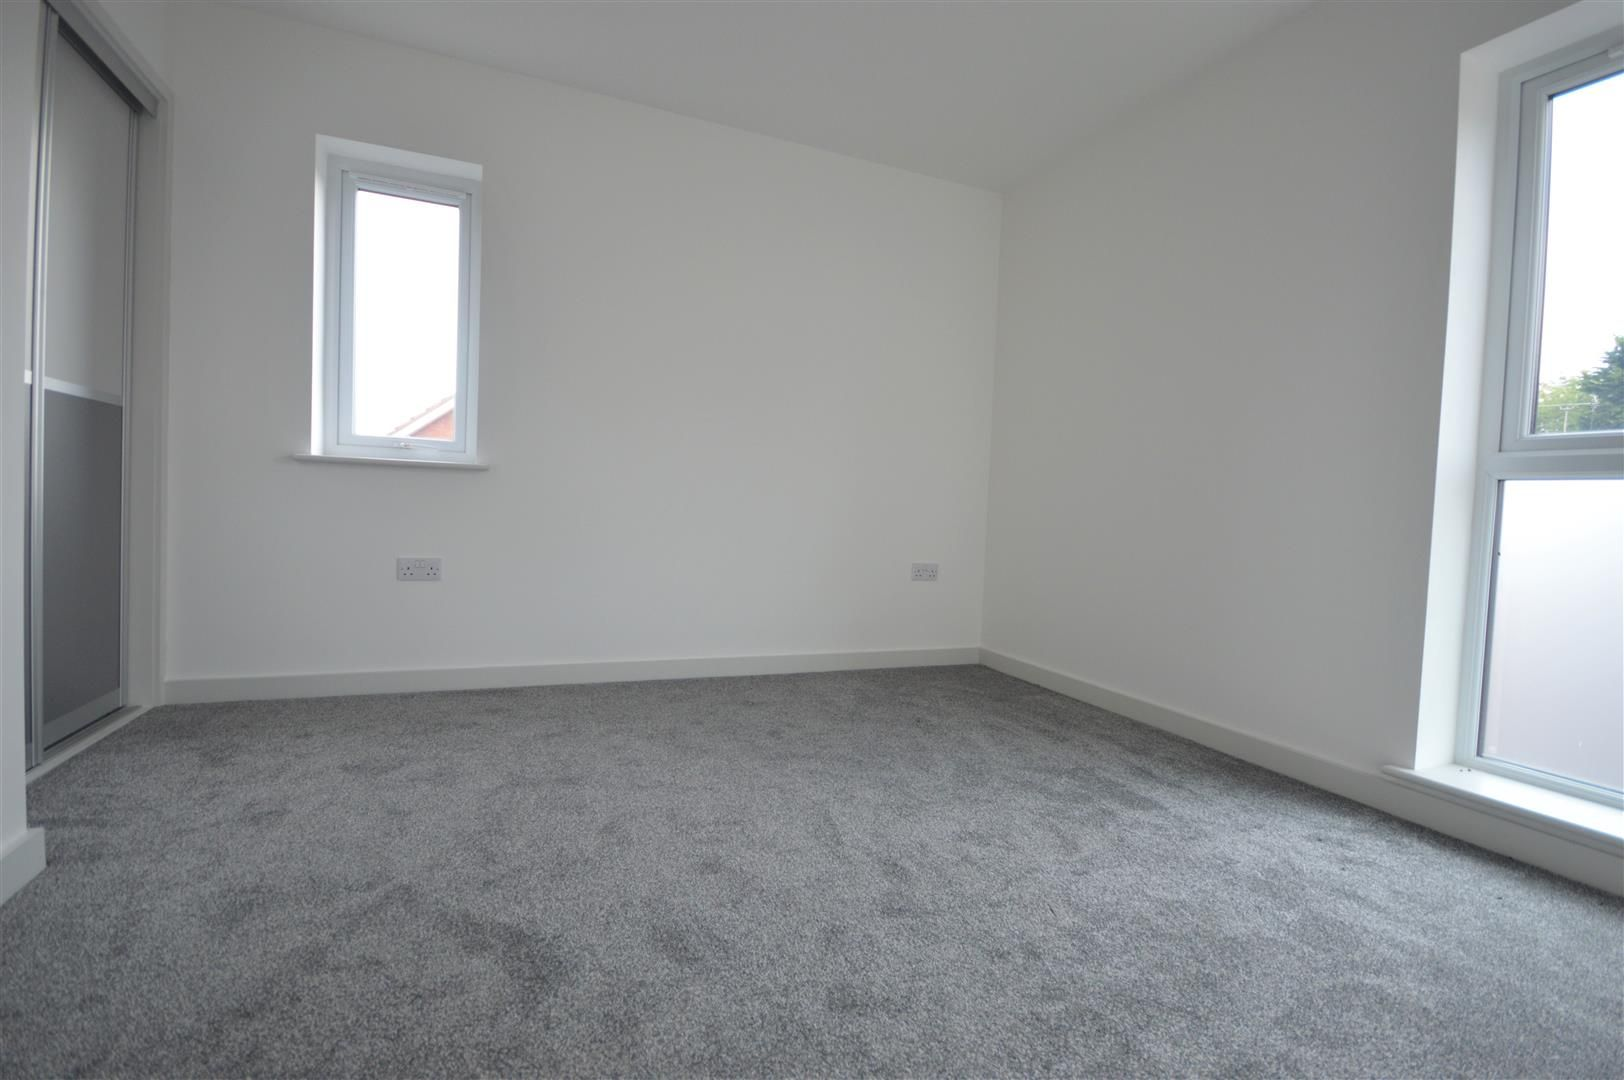 2 bed semi-detached for sale in Leominster 8